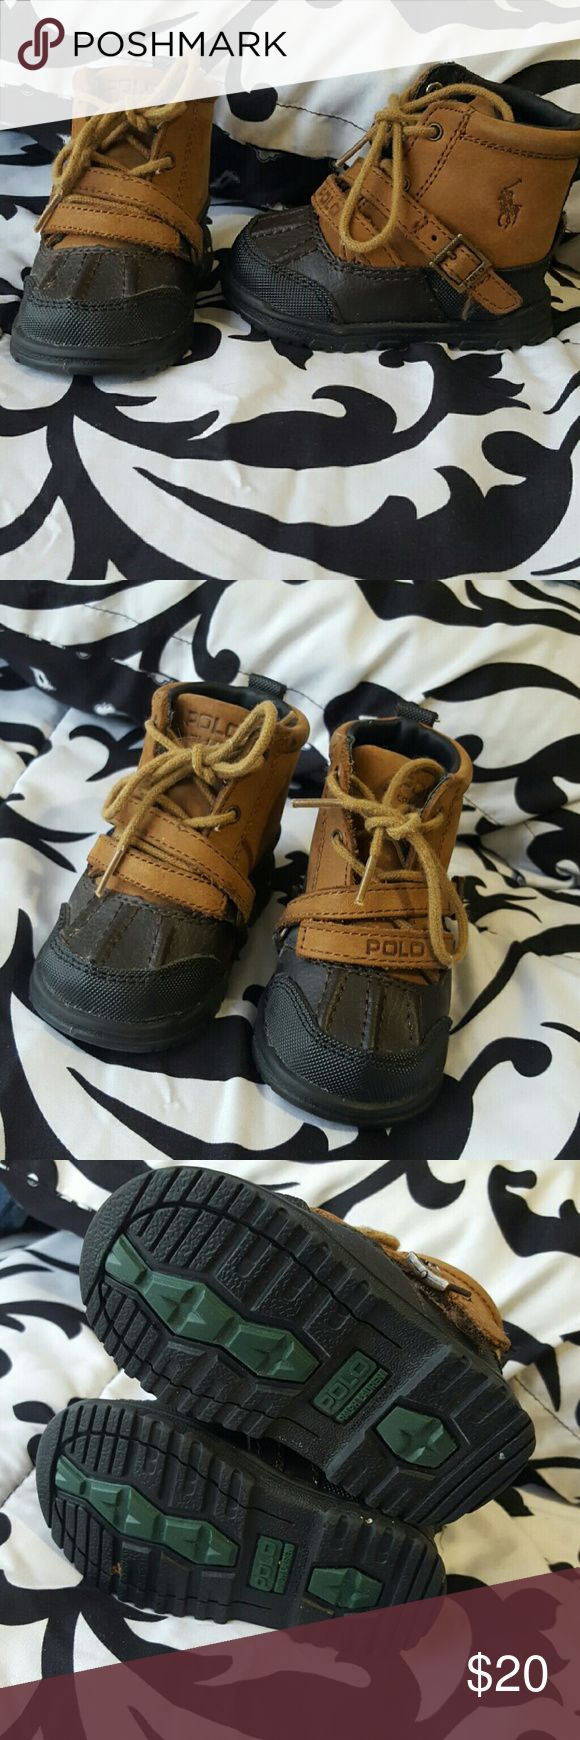 ⭐Sale⭐Polo Ralph Lauren leather boots **Almost perfect condition, has small scratches please see additional listing for more pictures** *Size 2* *Brown and black* Polo by Ralph Lauren Shoes Baby & Walker